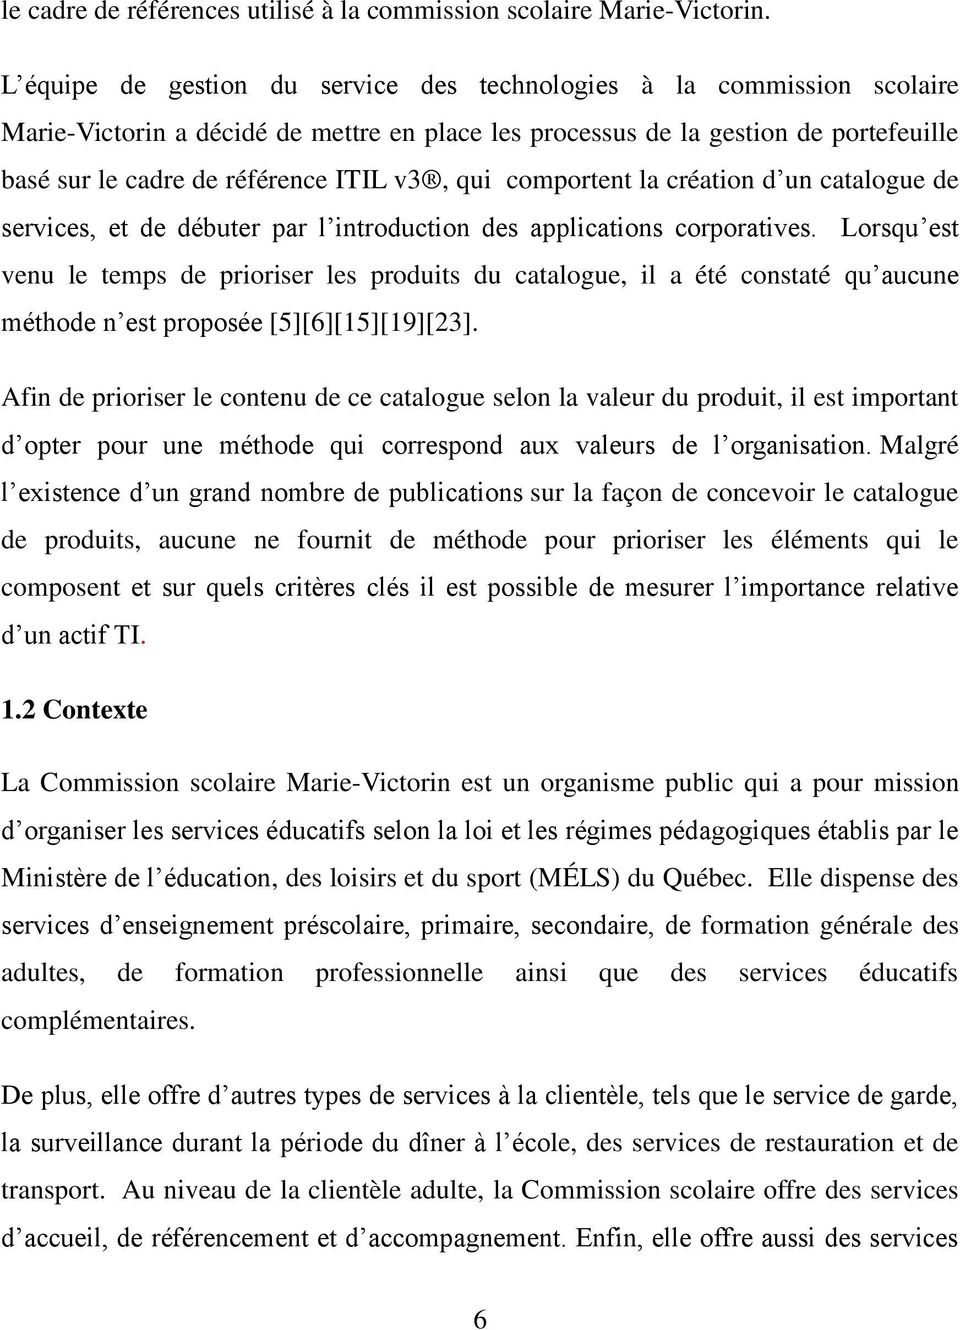 qui comportent la création d un catalogue de services, et de débuter par l introduction des applications corporatives.